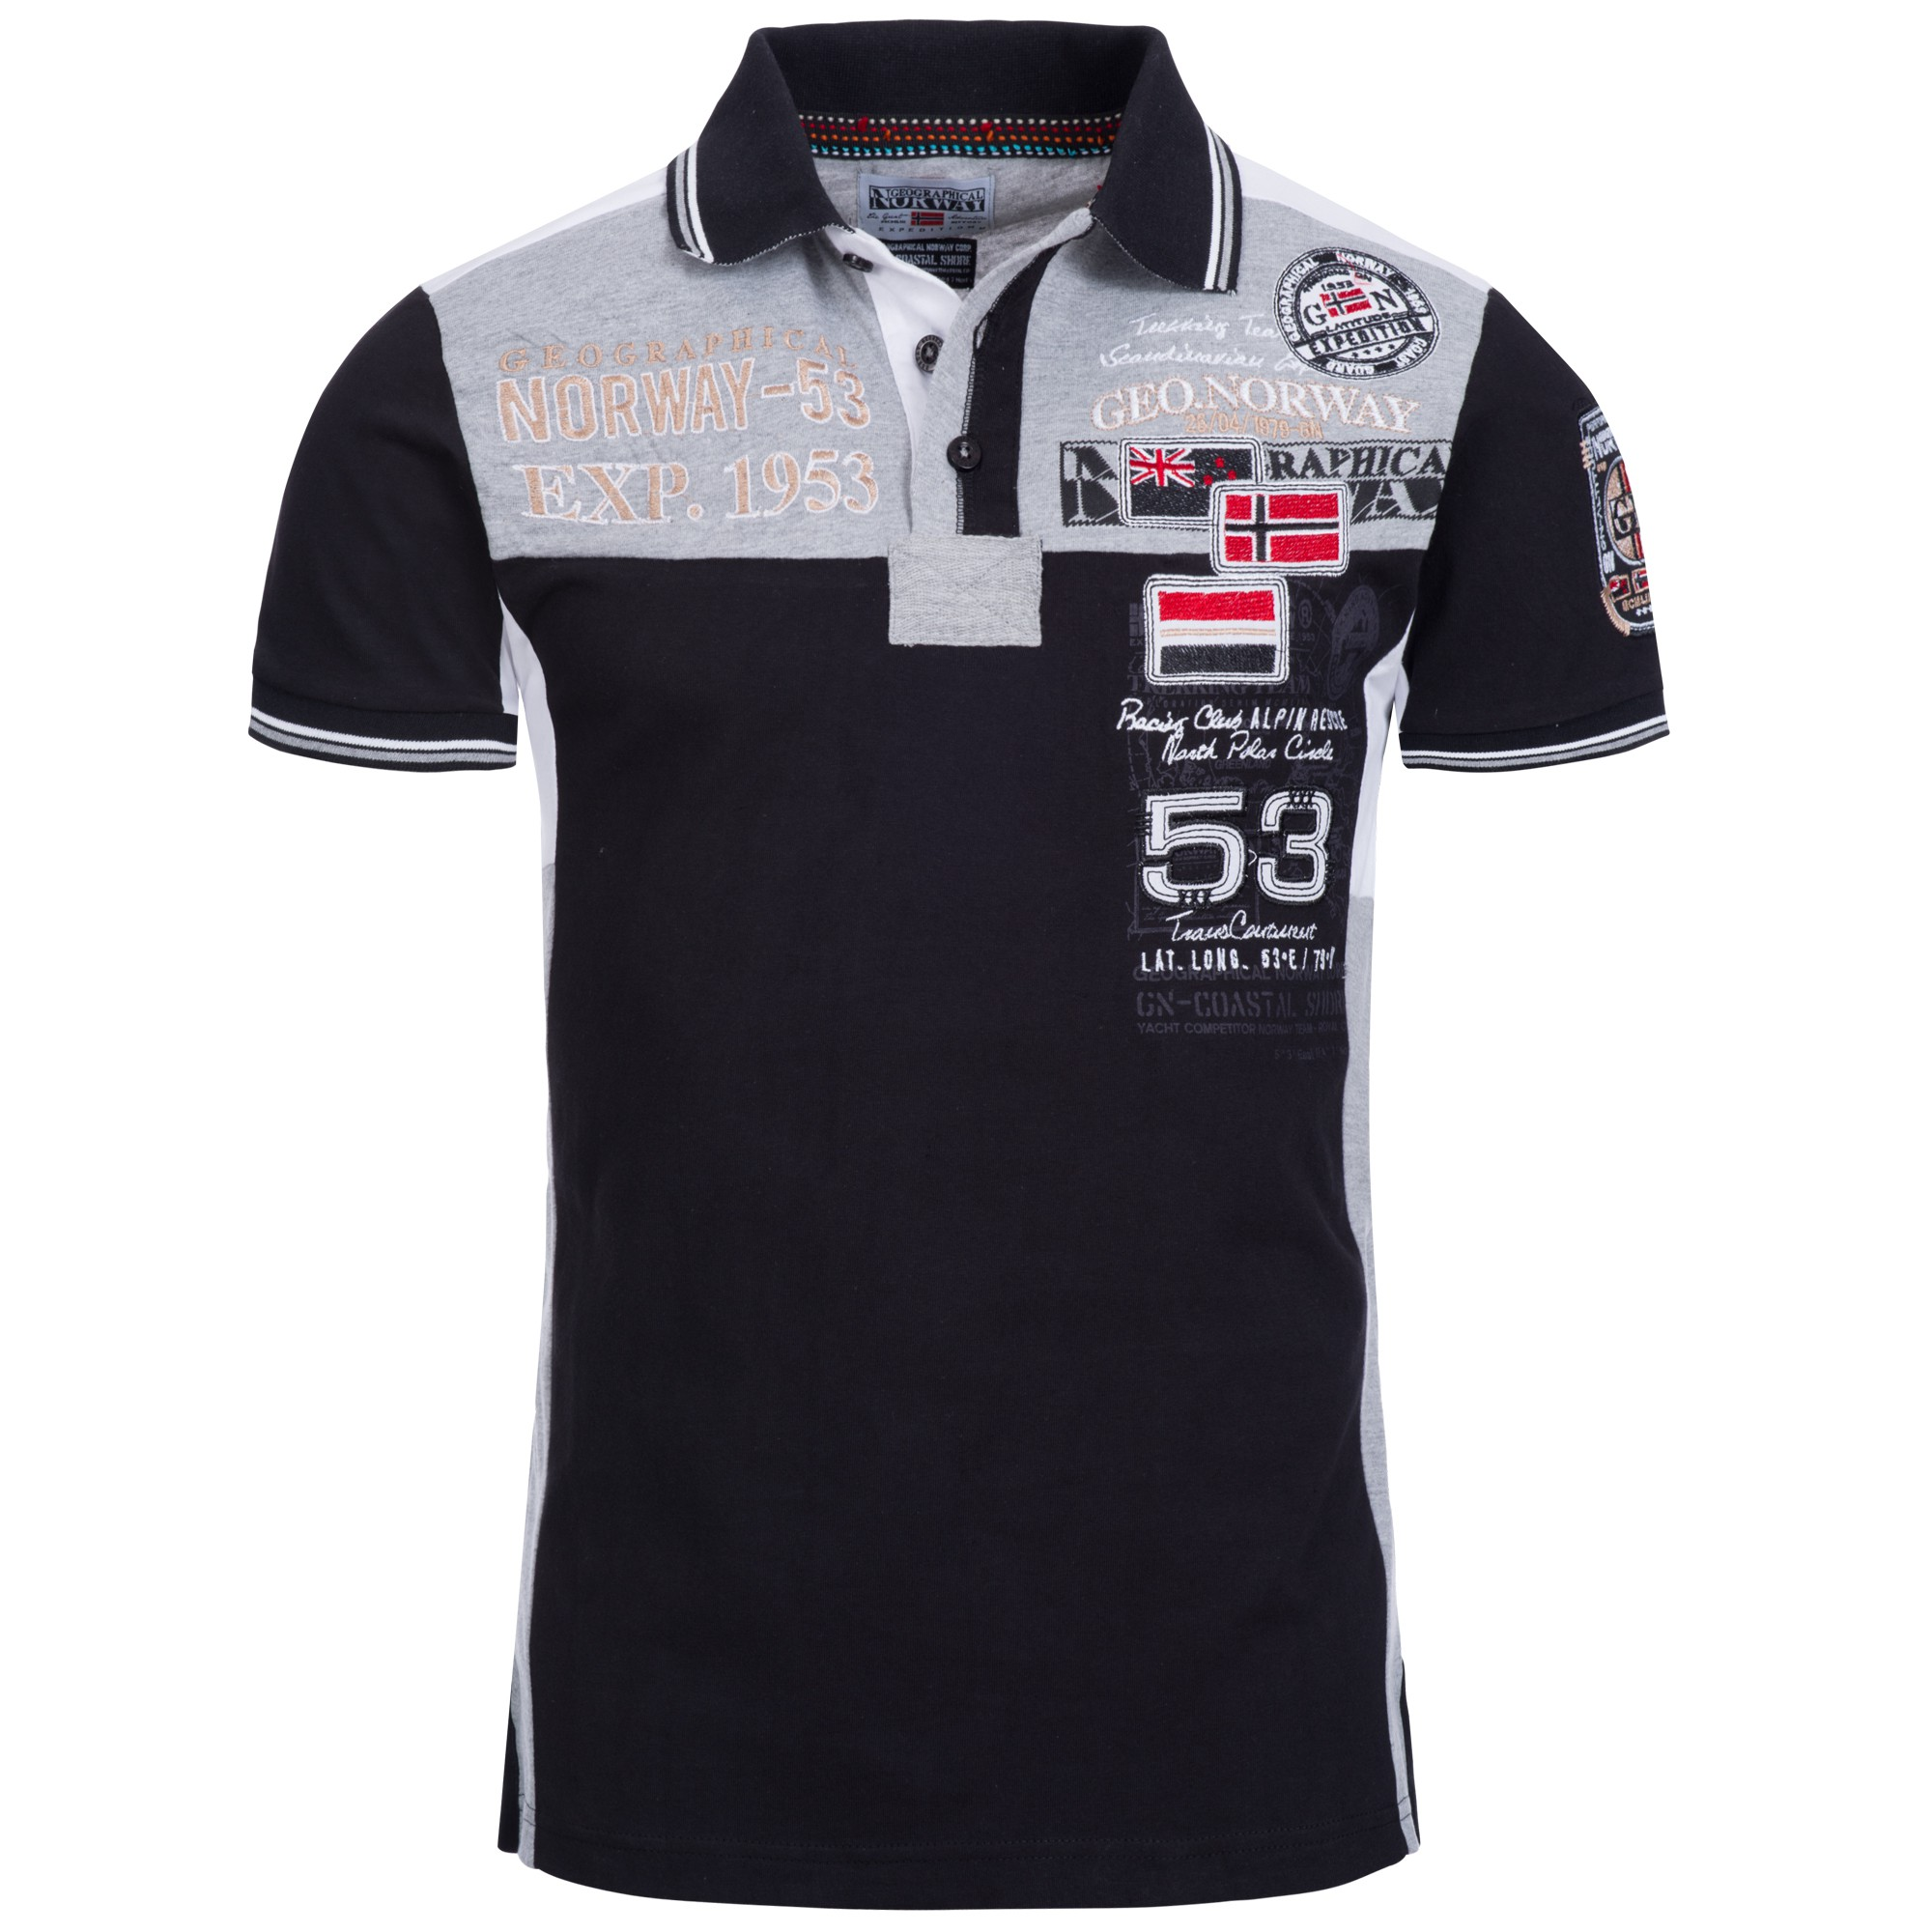 geographical norway keeper poloshirt polo shirt t shirt hemd s xxxl ebay. Black Bedroom Furniture Sets. Home Design Ideas